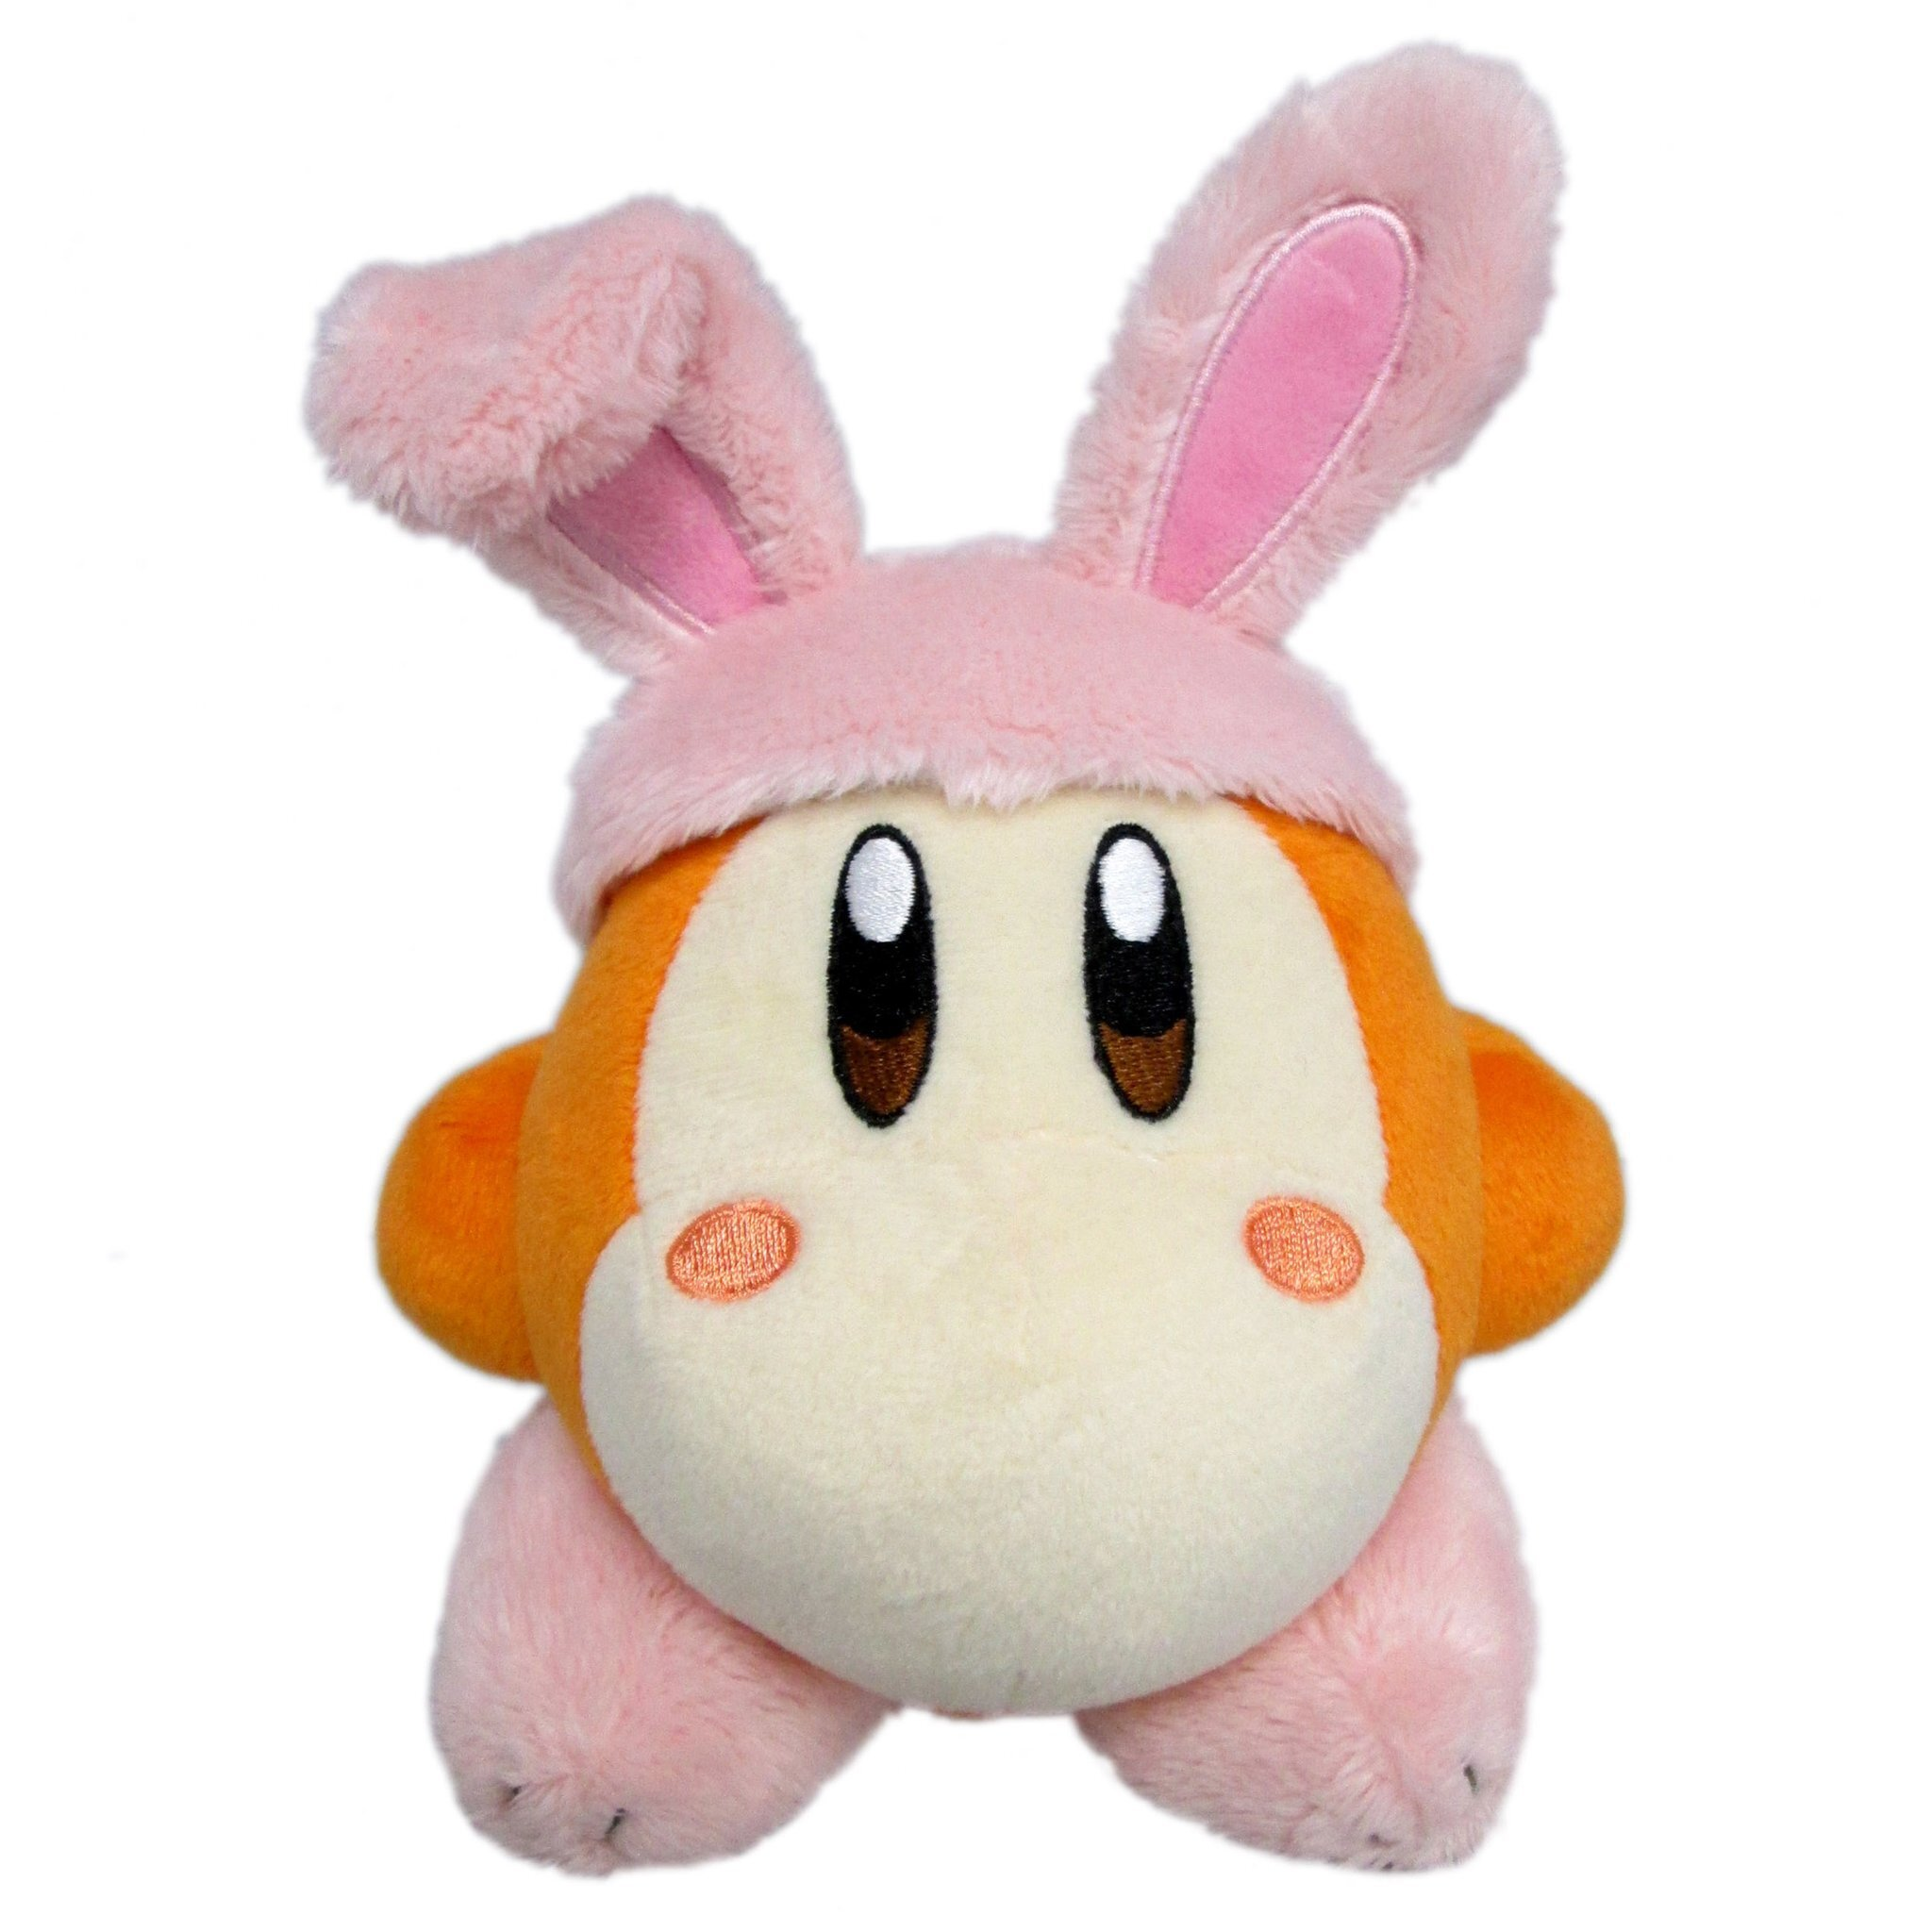 rabbit-waddle-dee-all-star-collection-plush (1)